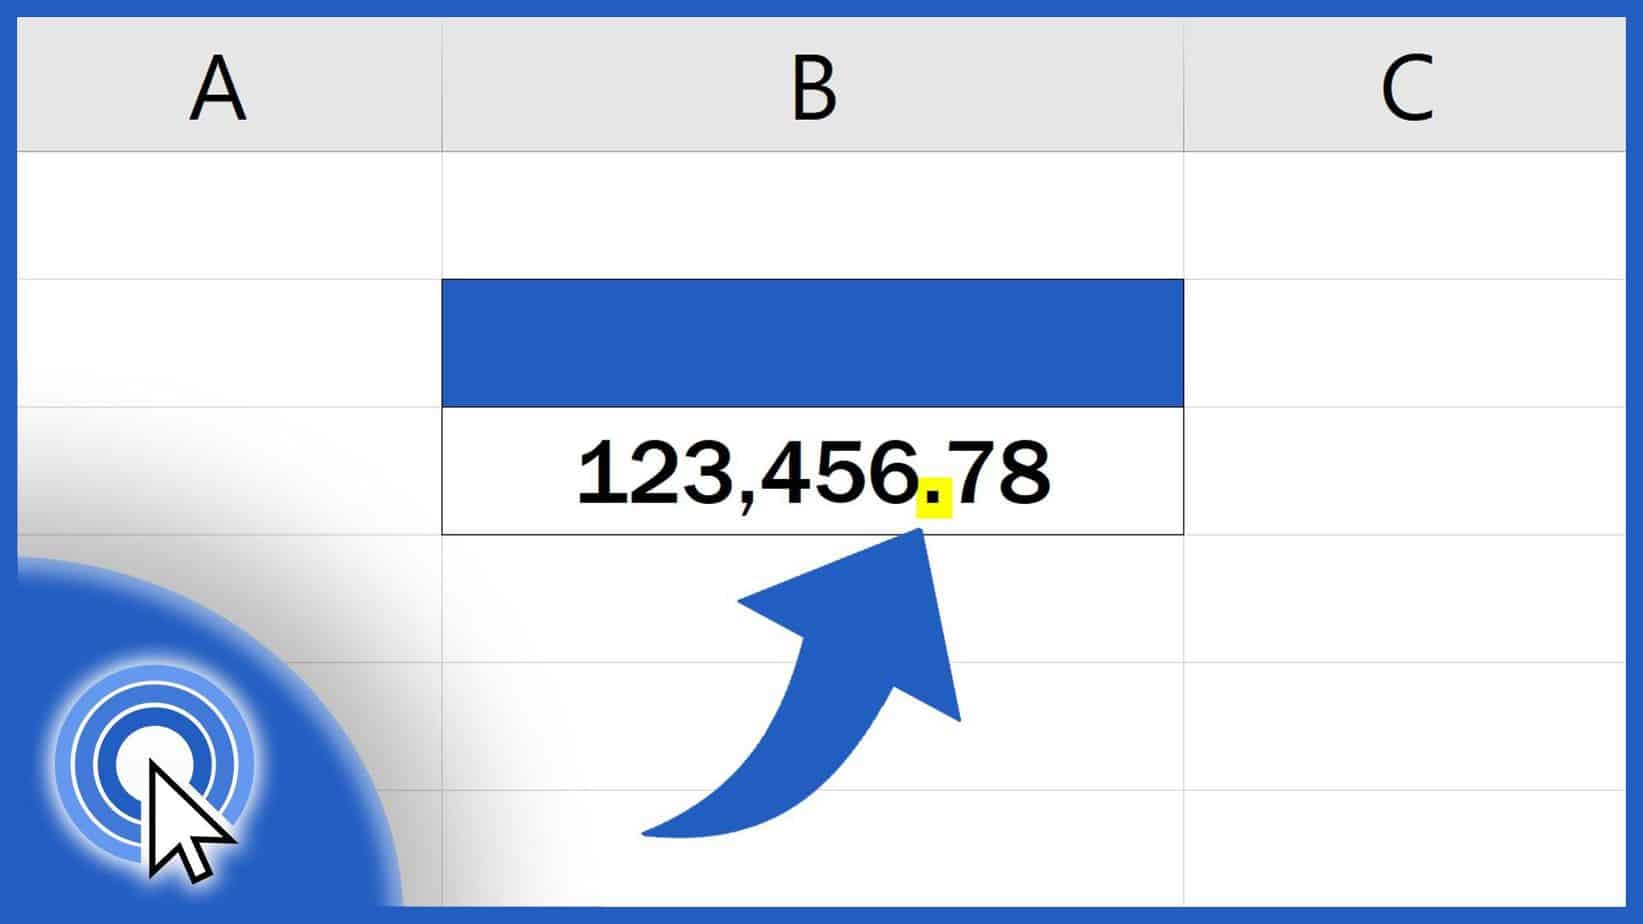 How to Change Decimal Separator in Excel